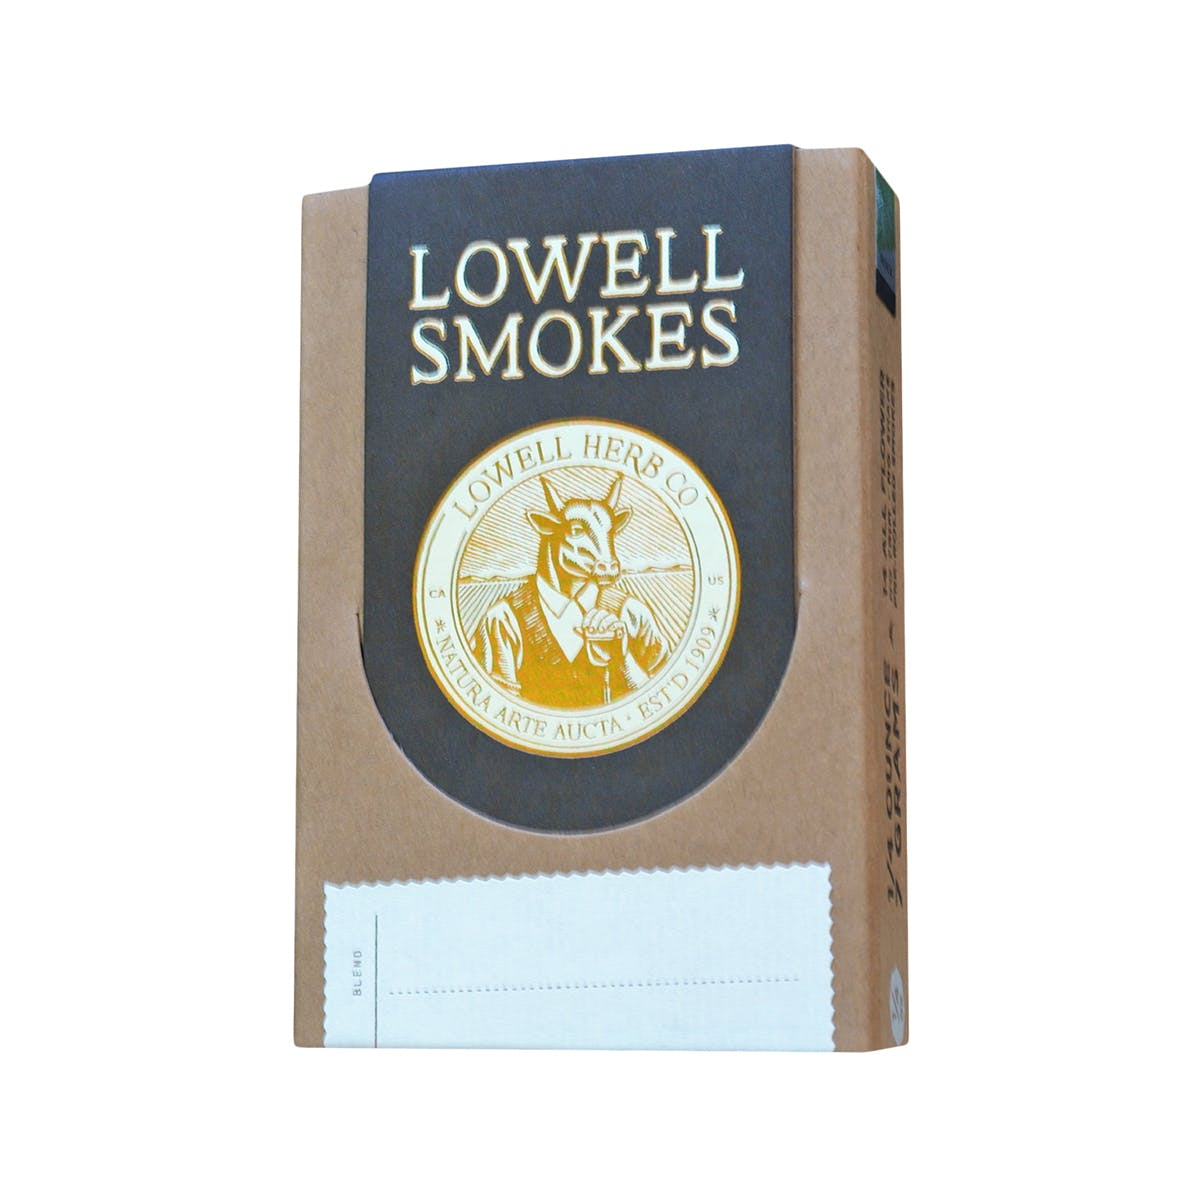 Lowell Smokes - The Hybrid Blend - 7g Pack